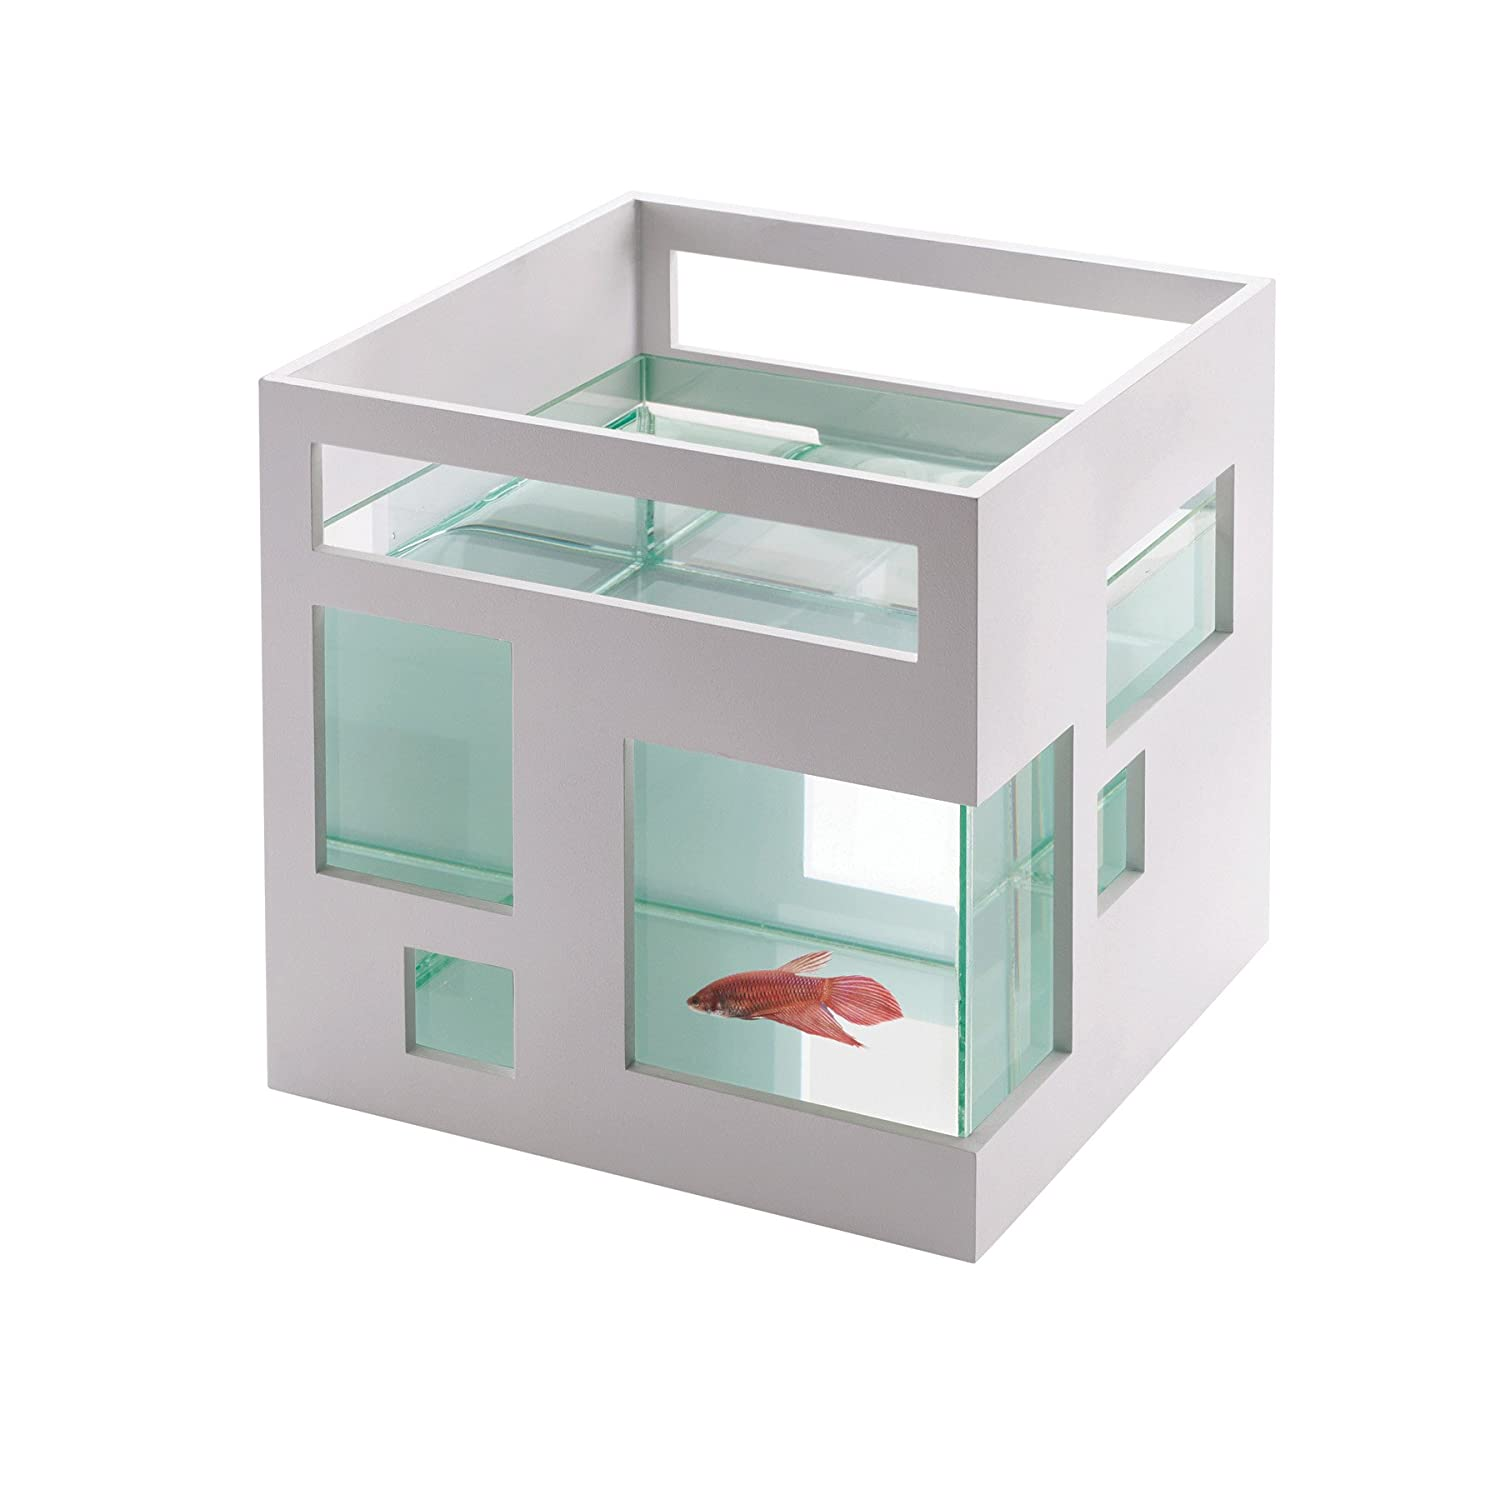 Amazon.com : Umbra FishHotel Aquarium : Fish Bowls : Pet Supplies